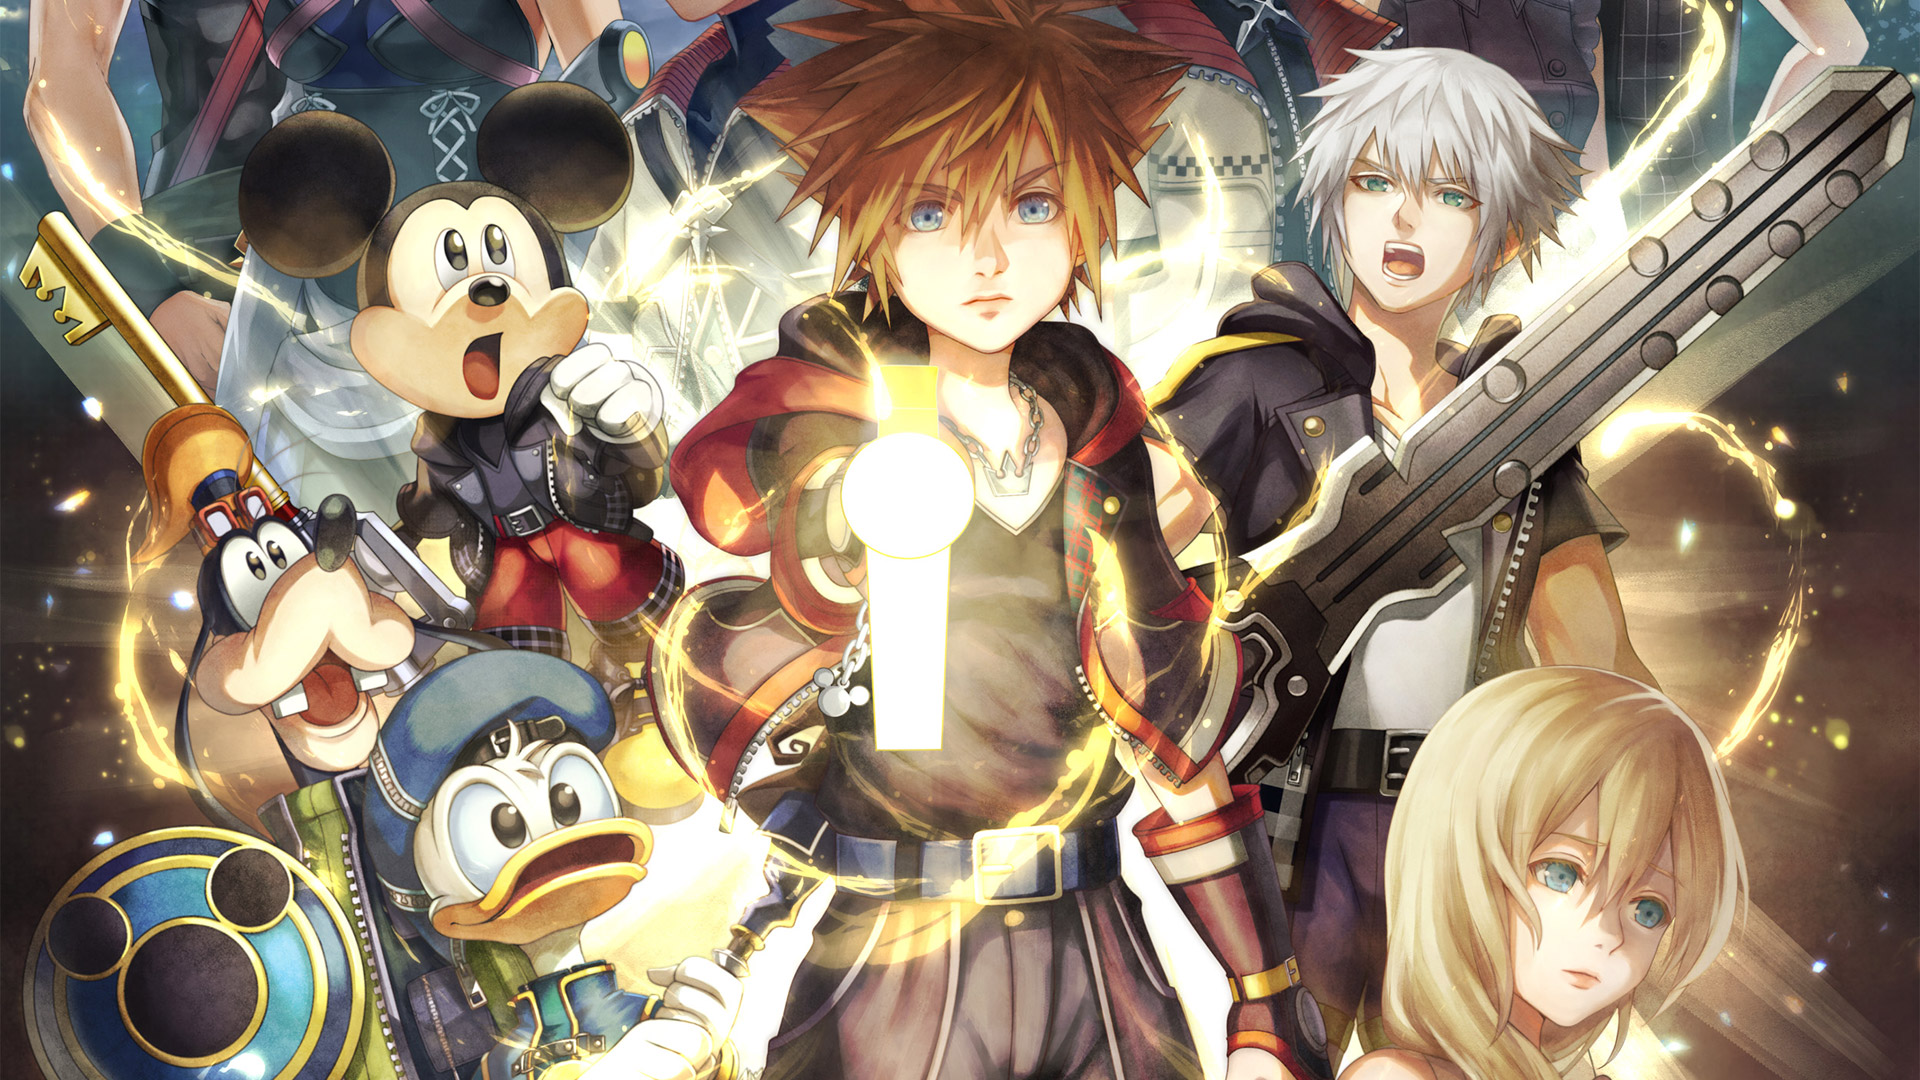 Kingdom Hearts III Wallpaper in 1920x1080